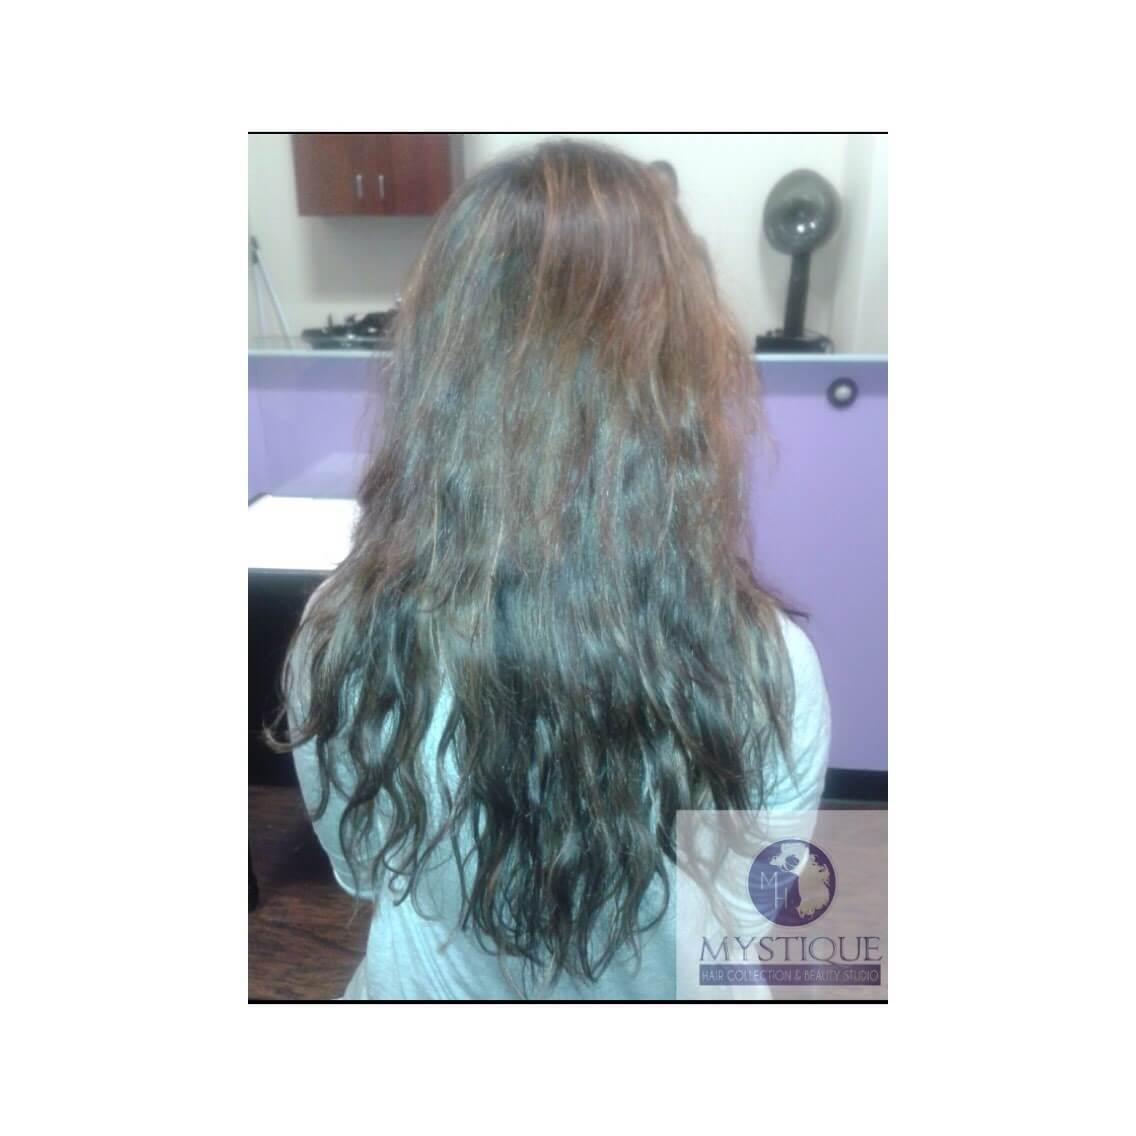 How To Sell Hair Extensions Client Pictures Mystique Hair Collection4